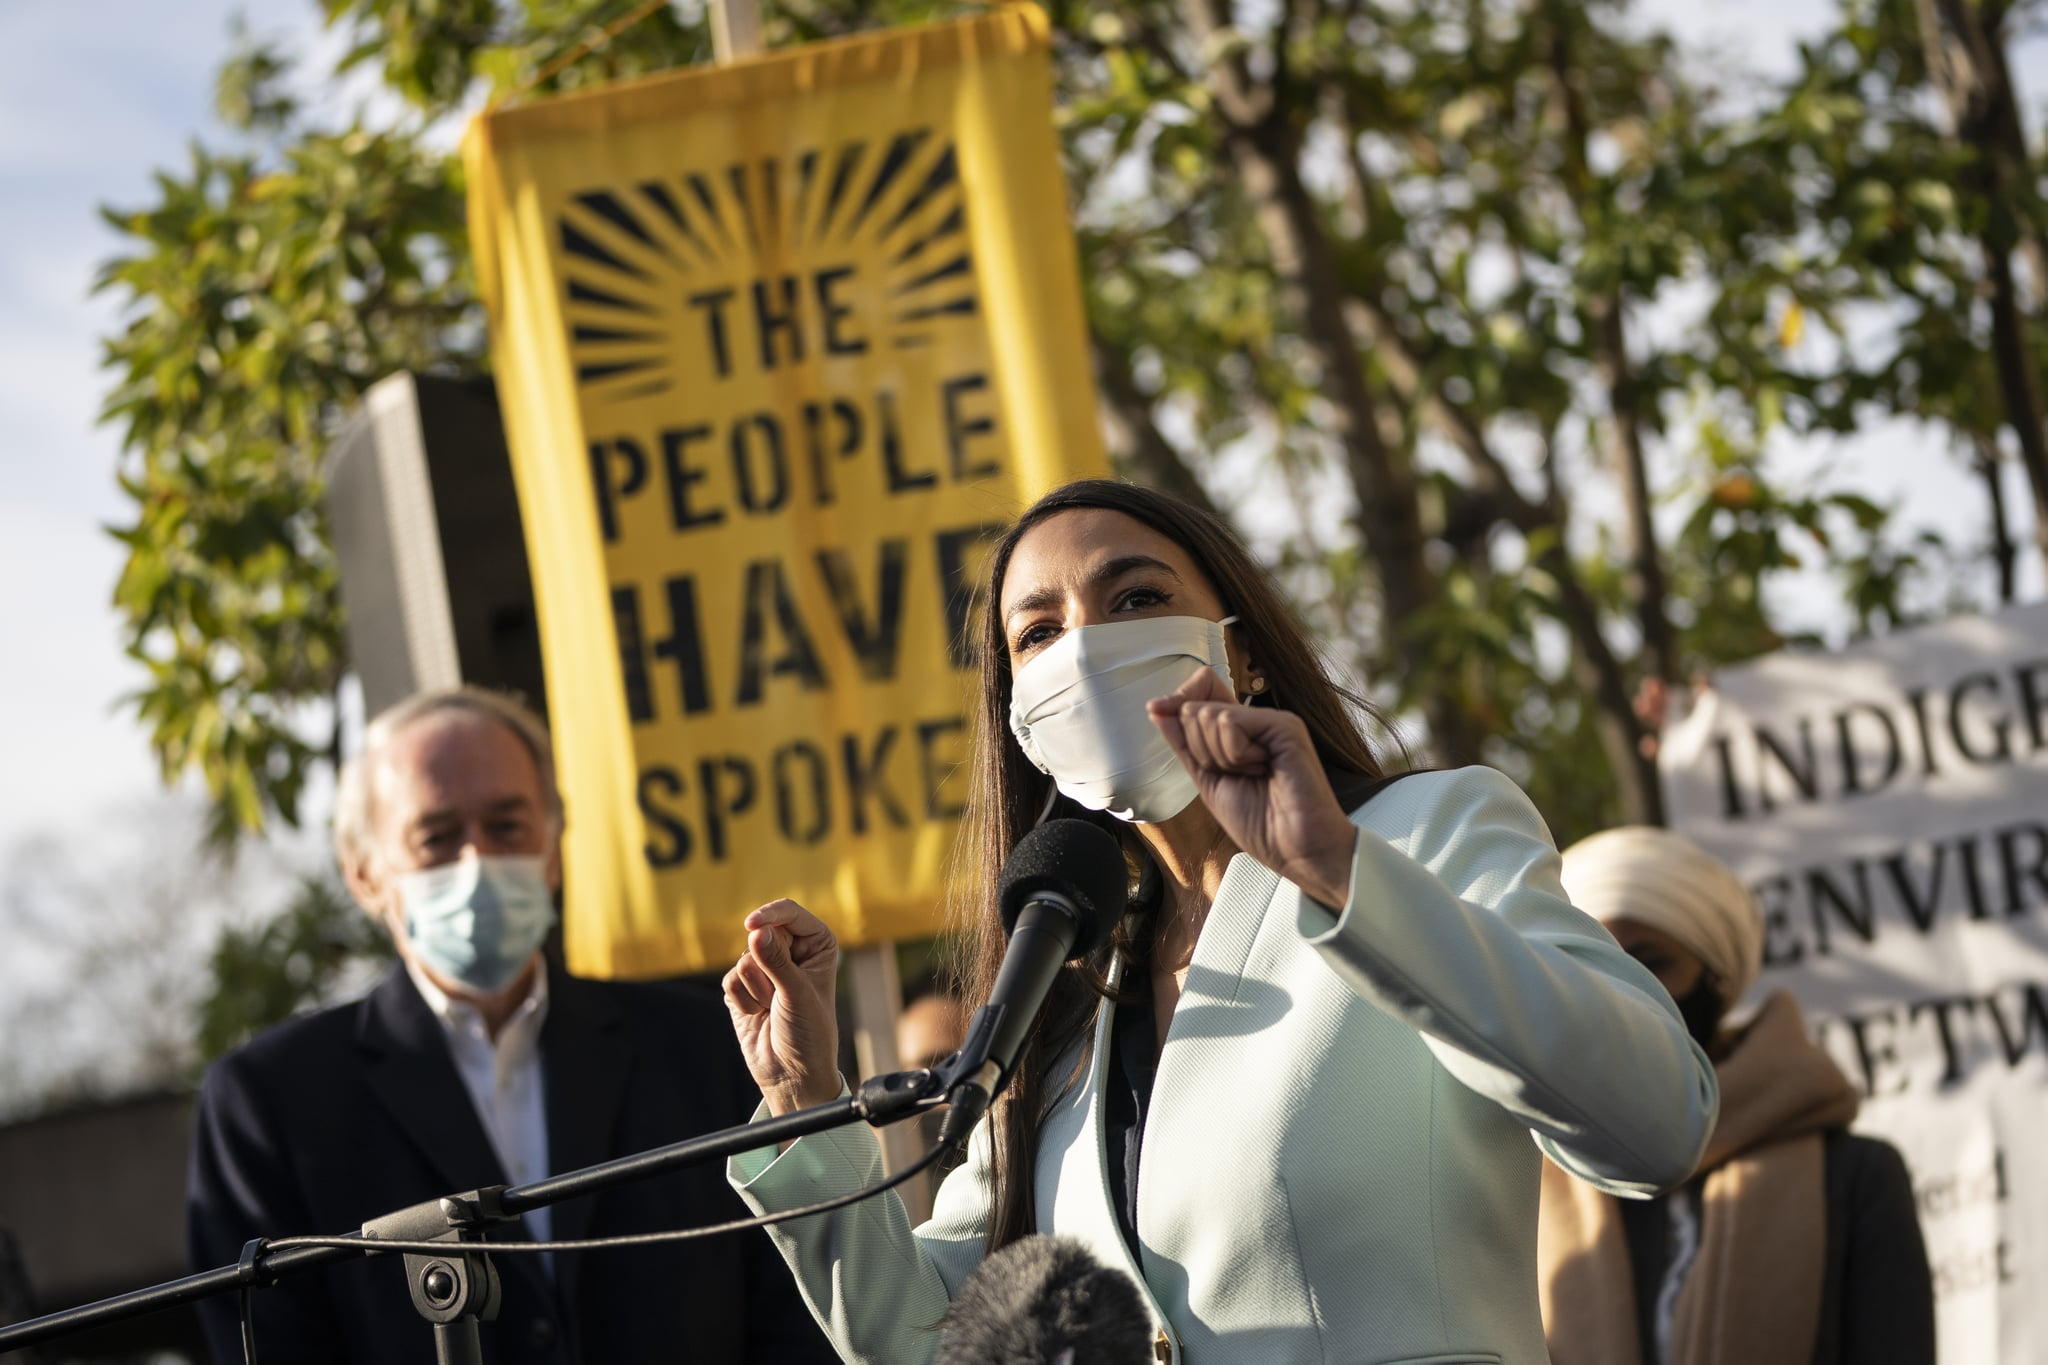 WASHINGTON, DC - NOVEMBER 19: U.S. Rep. Alexandria Ocasio-Cortez (D-NY) speaks outside of the Democratic National Committee headquarters on November 19, 2020 in Washington, DC. Rep. Ocasio-Cortez and others called on the incoming administration of President-elect Joe Biden to take bold action on issues of climate change and economic inequalities. (Photo by Drew Angerer/Getty Images)